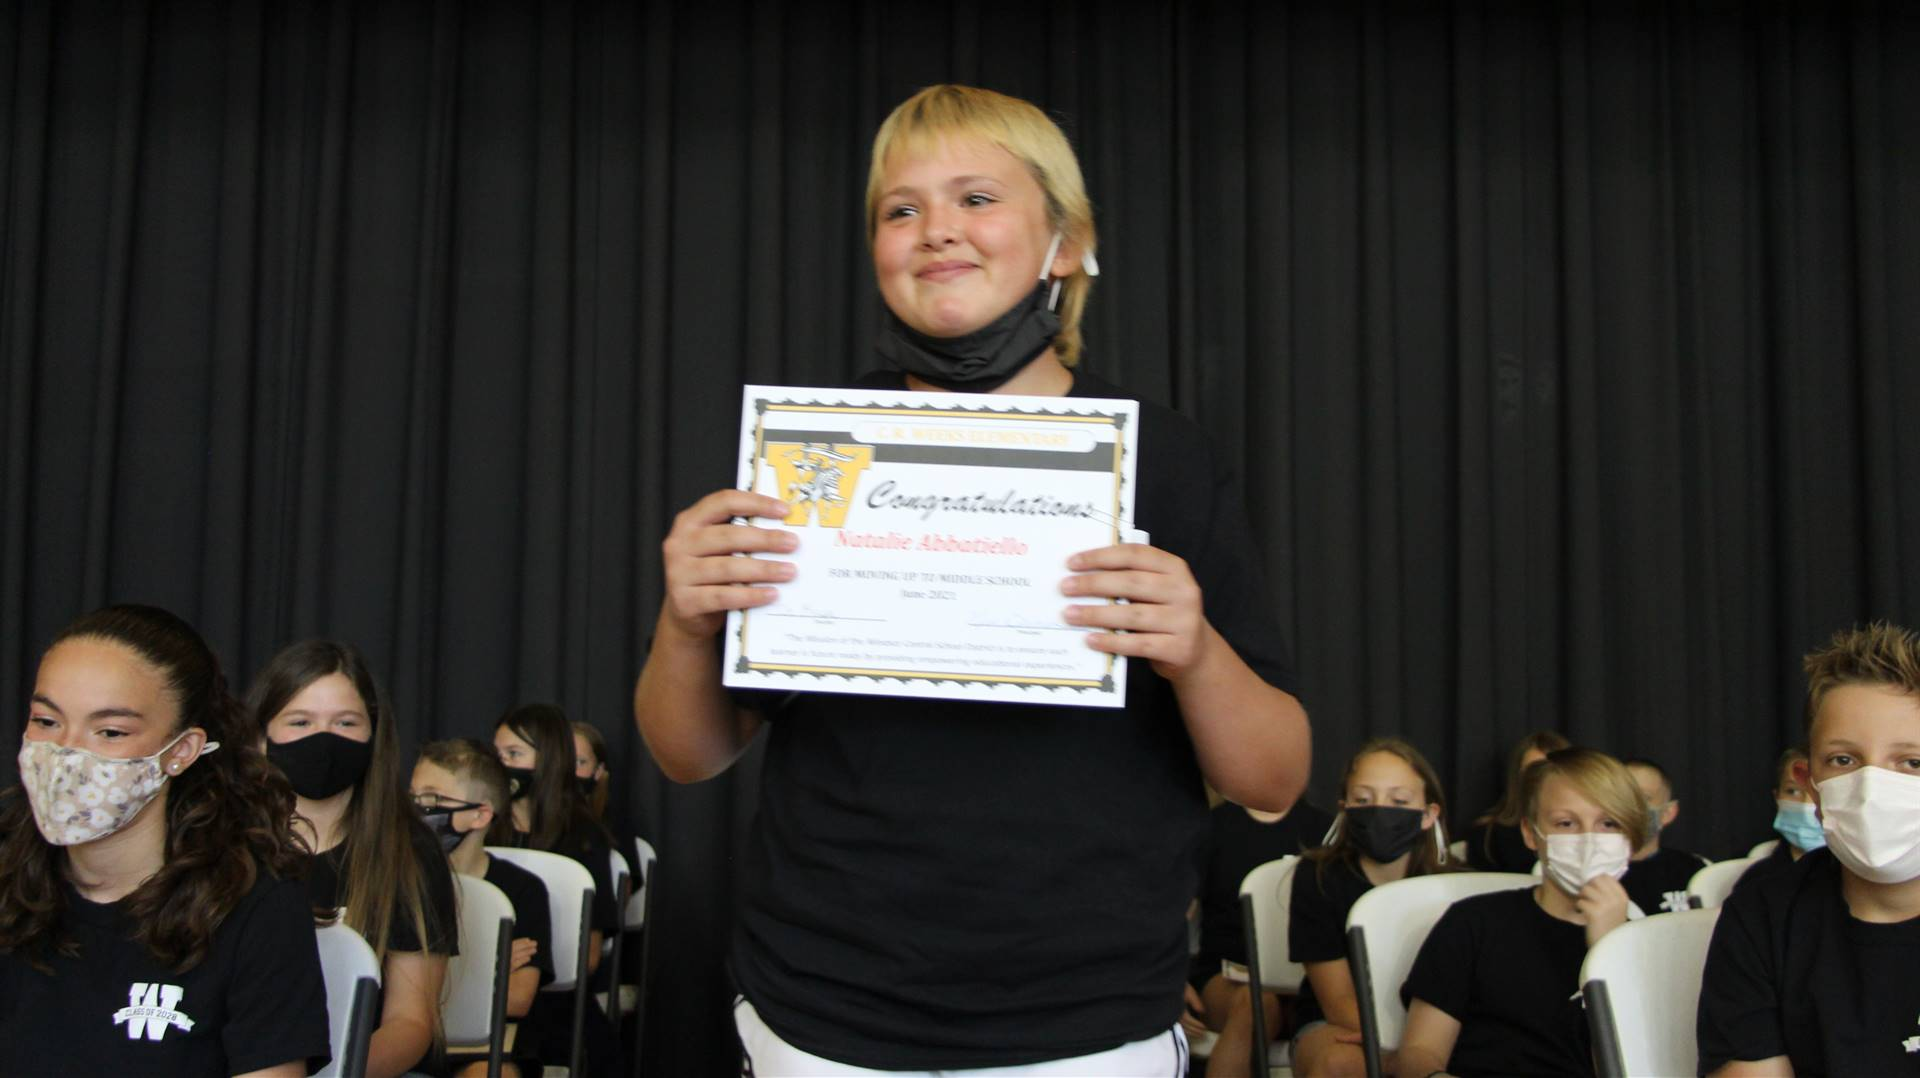 Young student holding a certificate